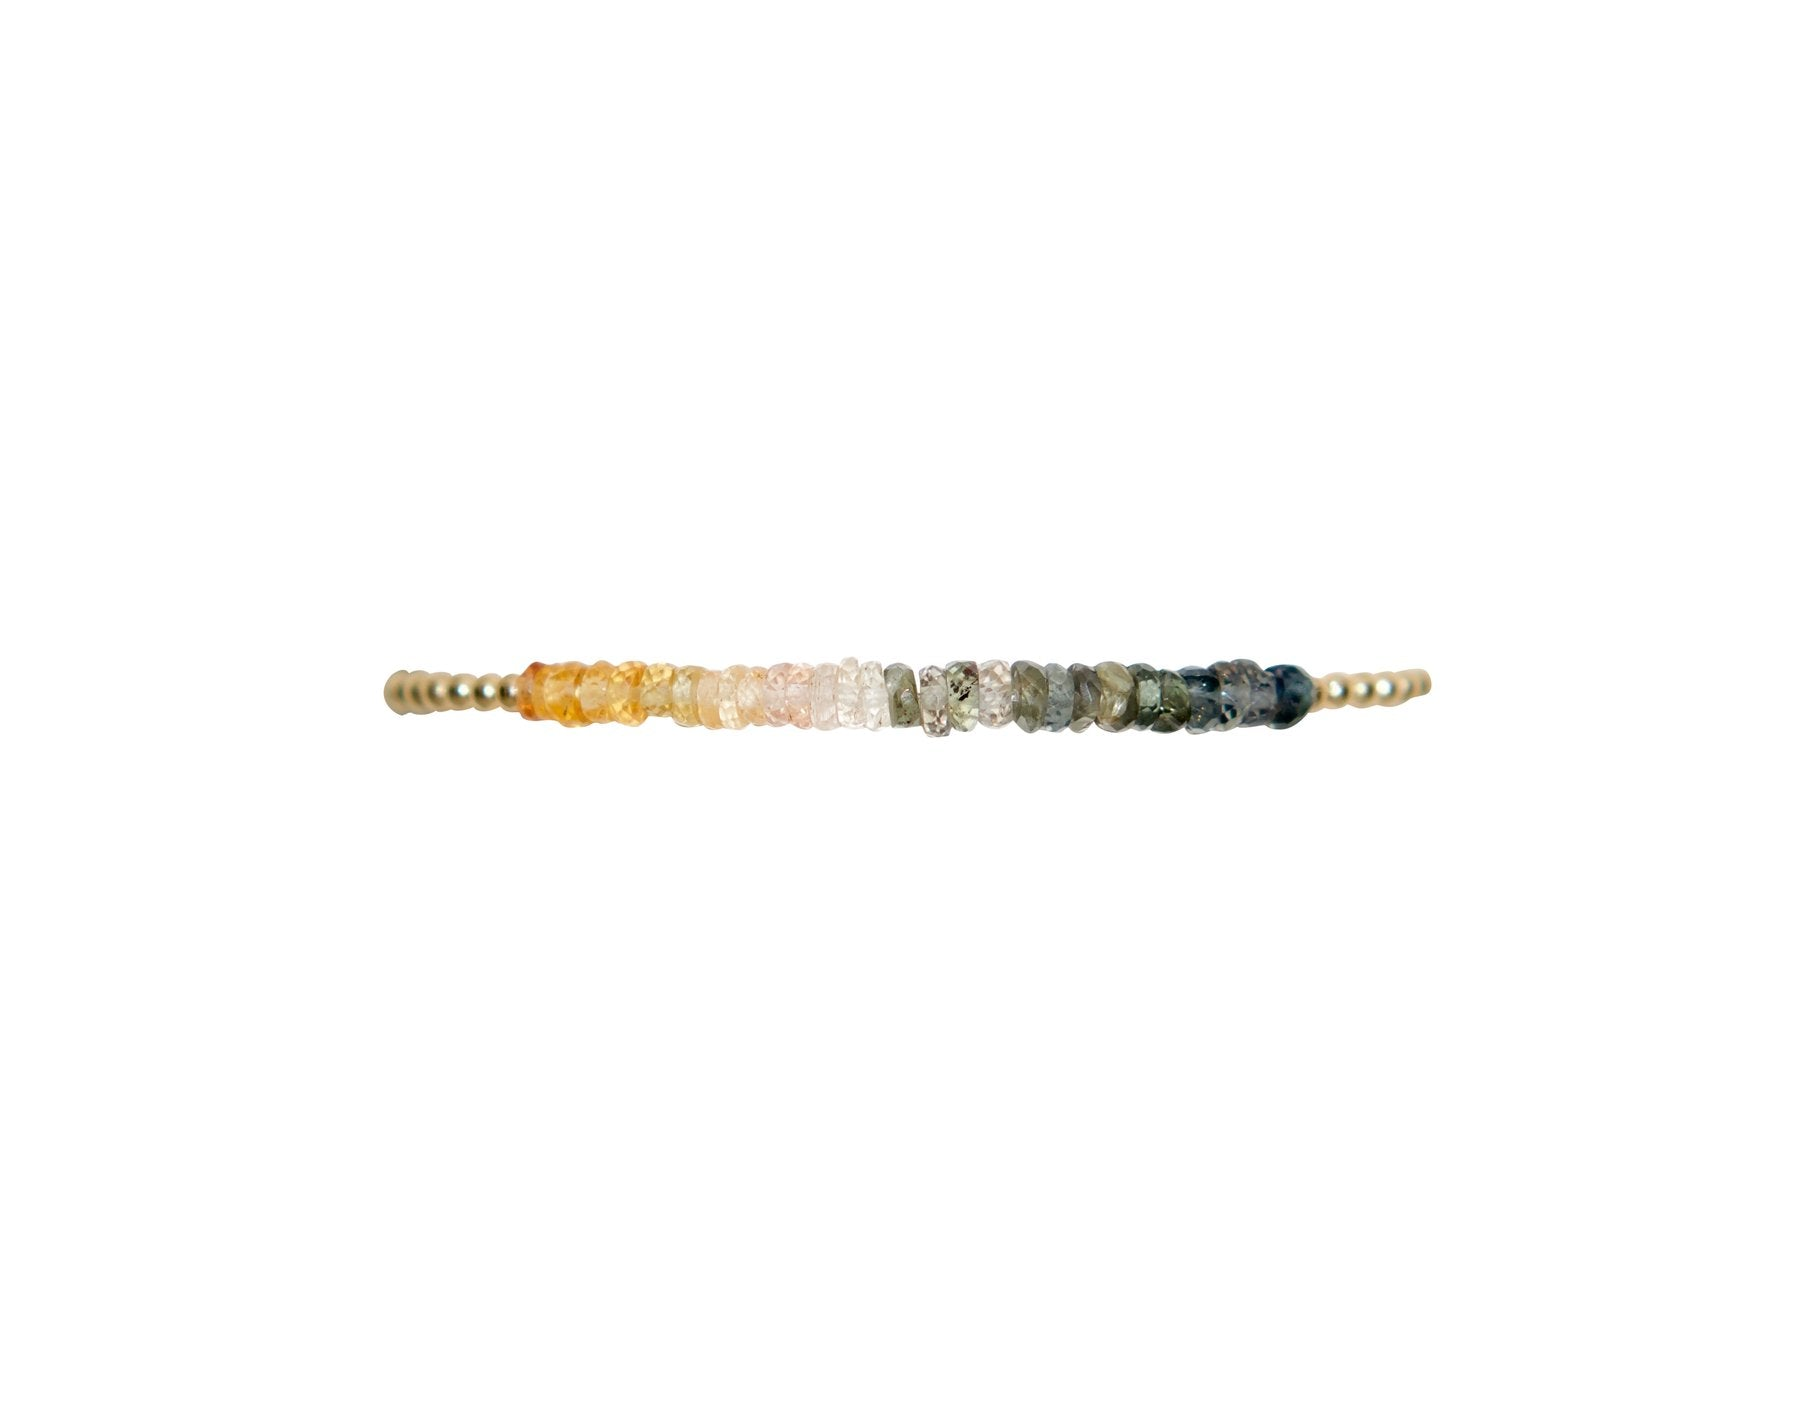 2mm Yellow Gold Filled Bracelet with Peachy Sapphire Ombre